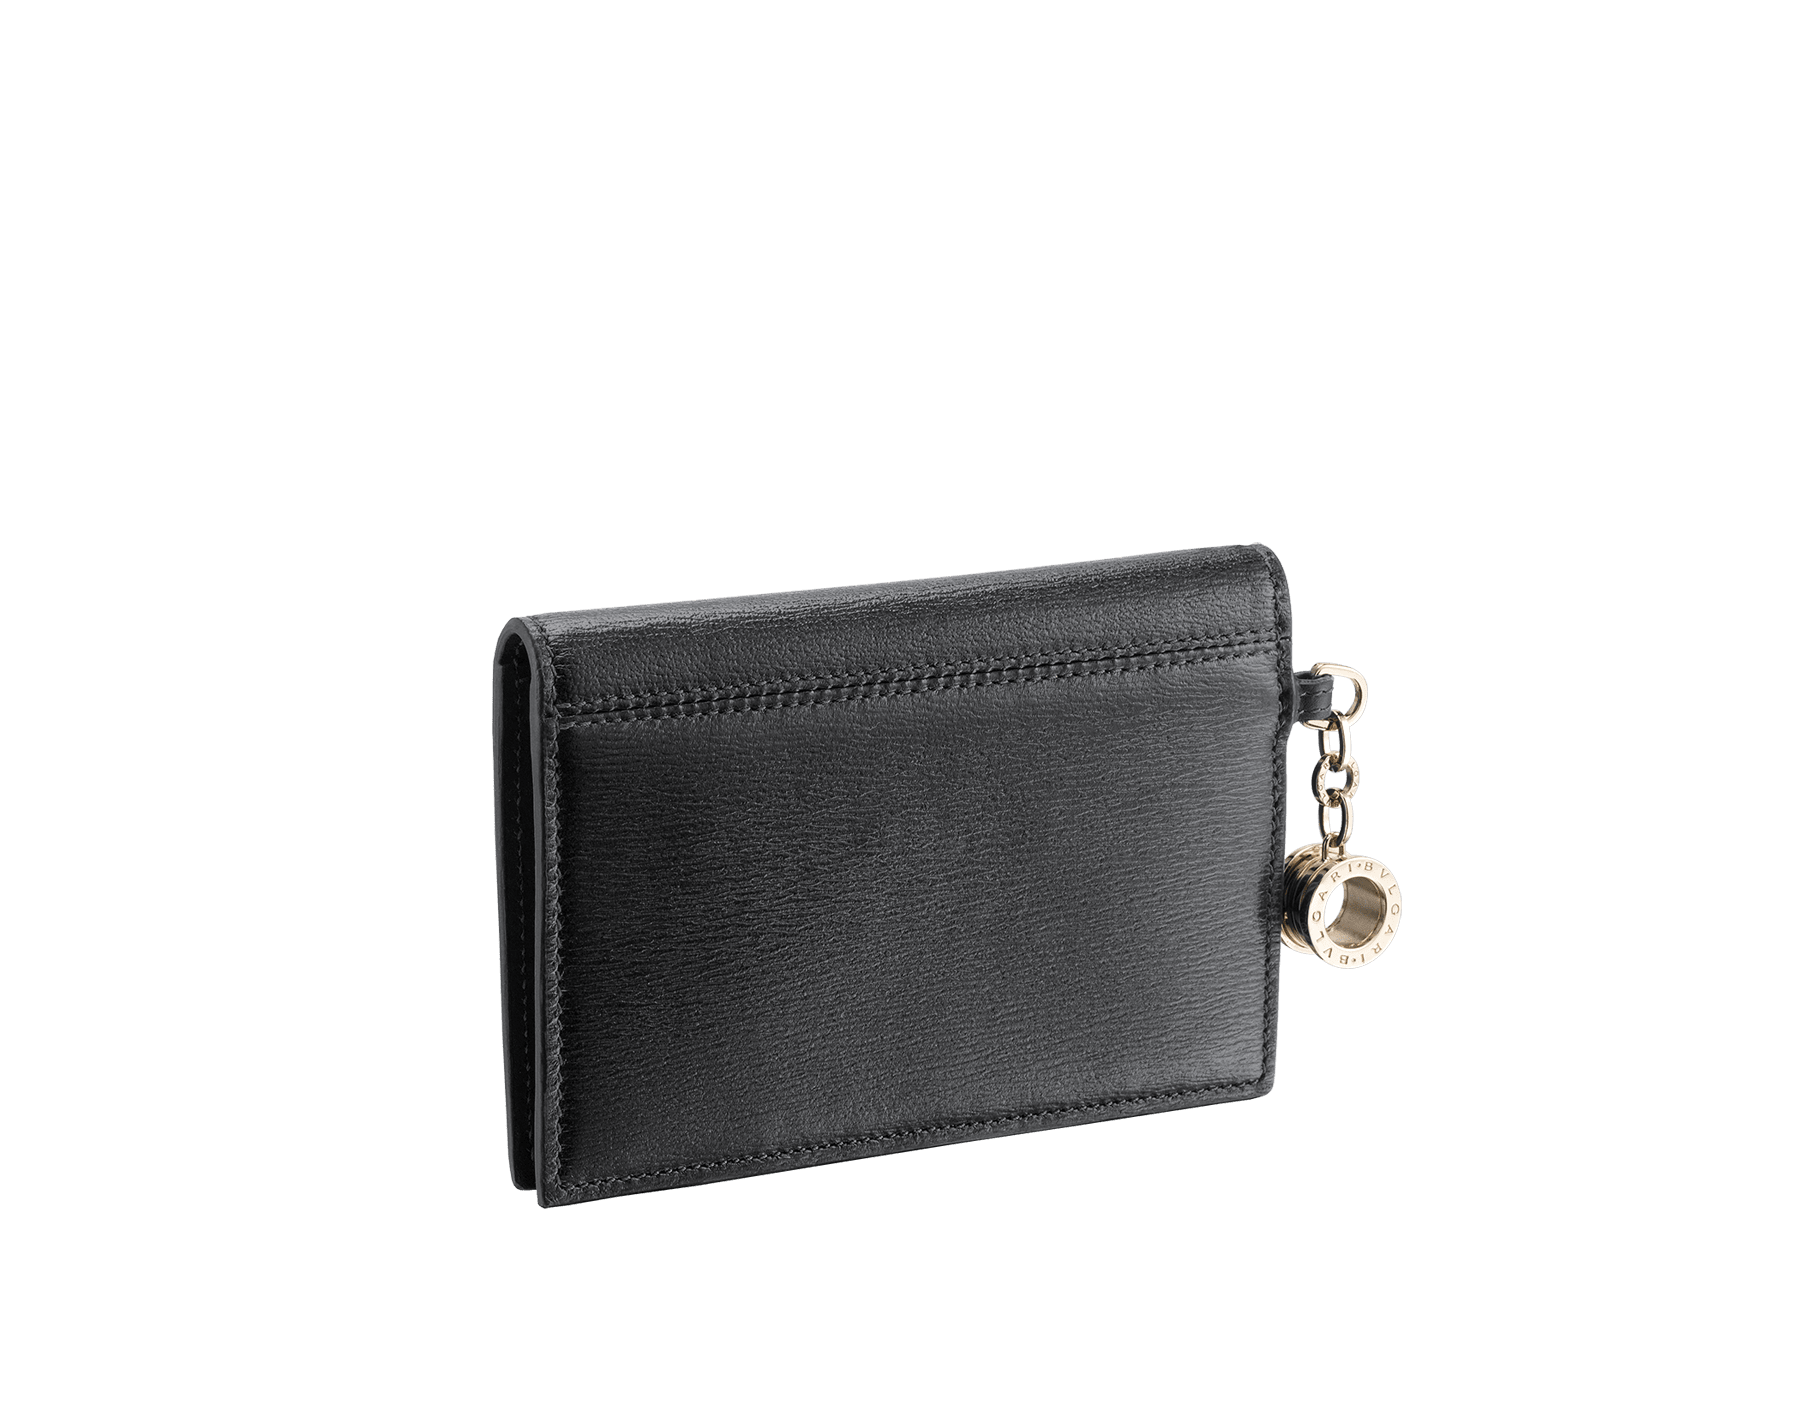 B.zero1 folded credit card holder in black goatskin. Iconic B.zero1 charm in light gold plated brass. 288236 image 3